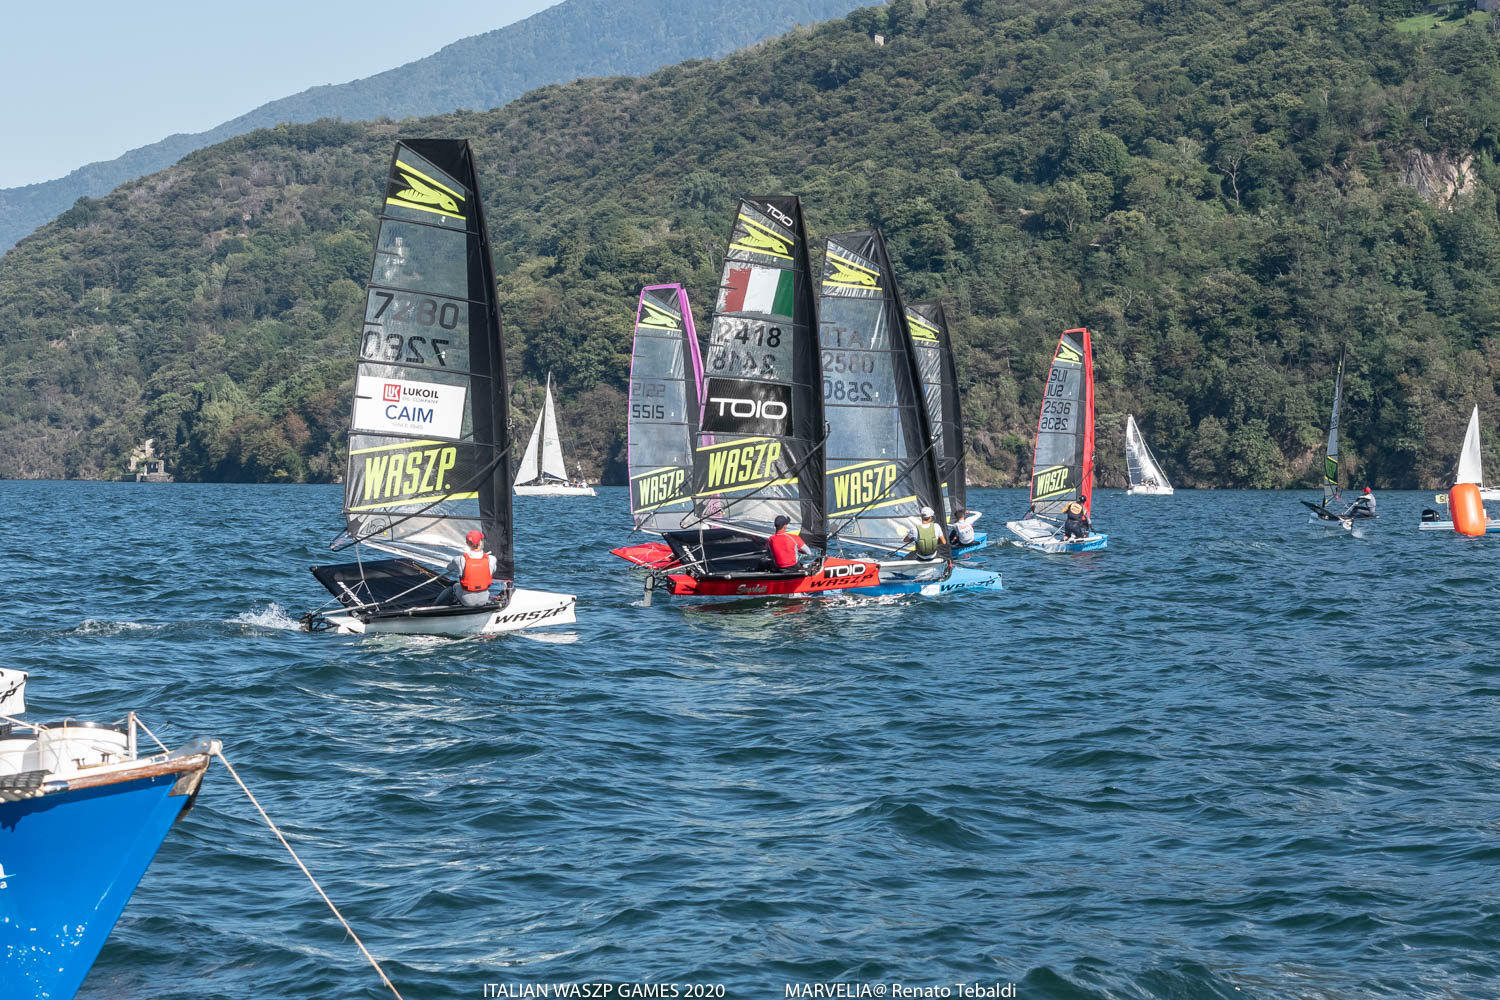 italian waszp games Dongo 5/6 settembre 2020. la classifica finale